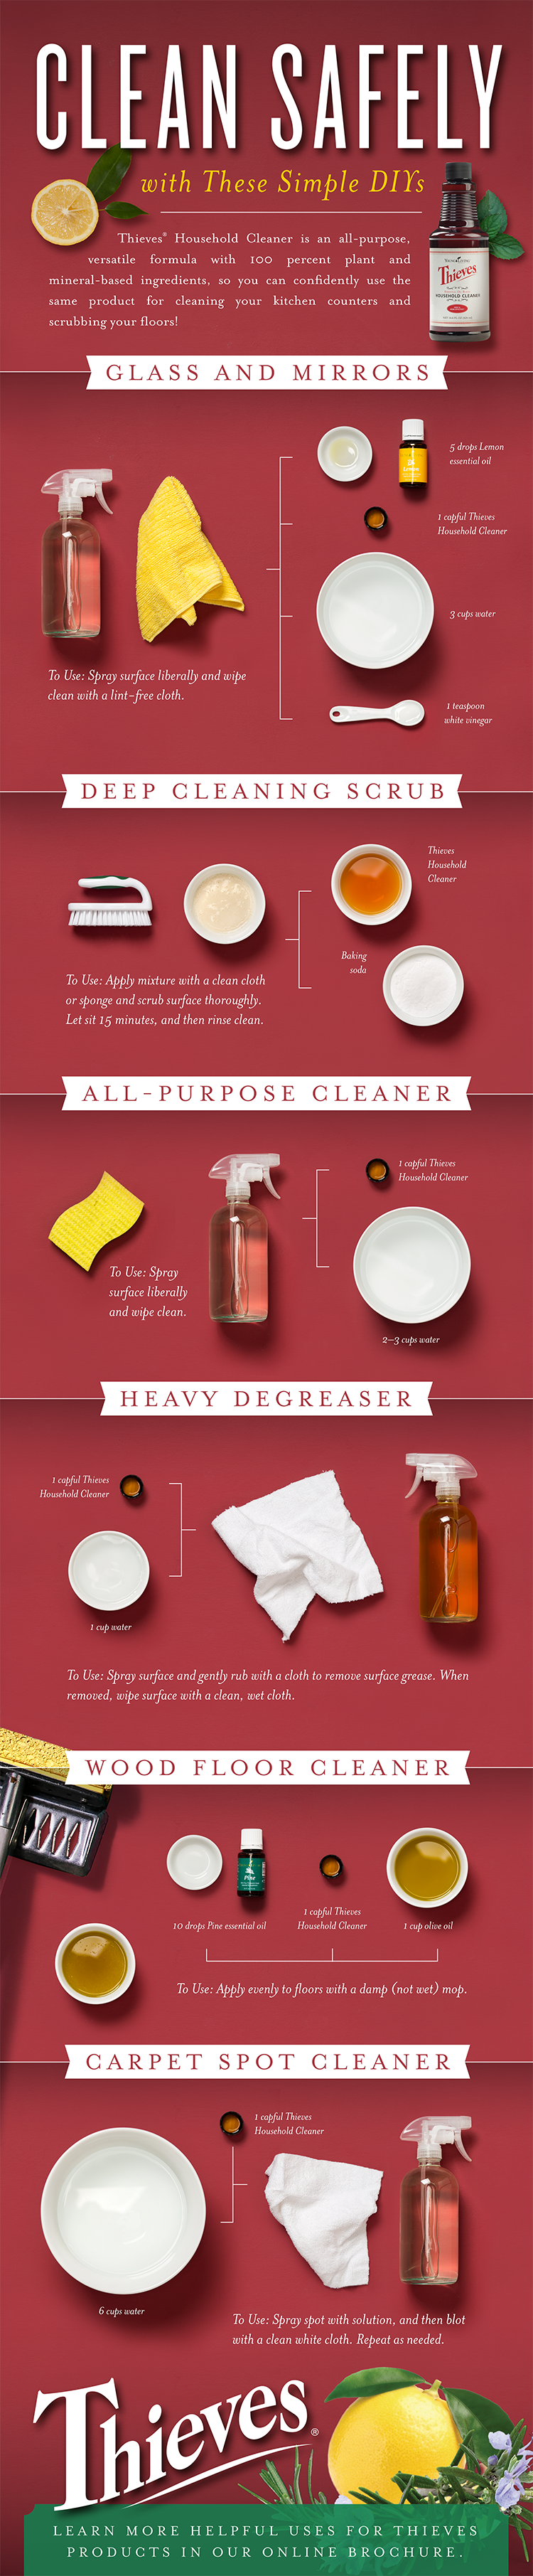 http://static.youngliving.com/info-graphics/en-us/everyday-oils-thieves-clean-safely/everyday-oils-thieves-clean-safely.png